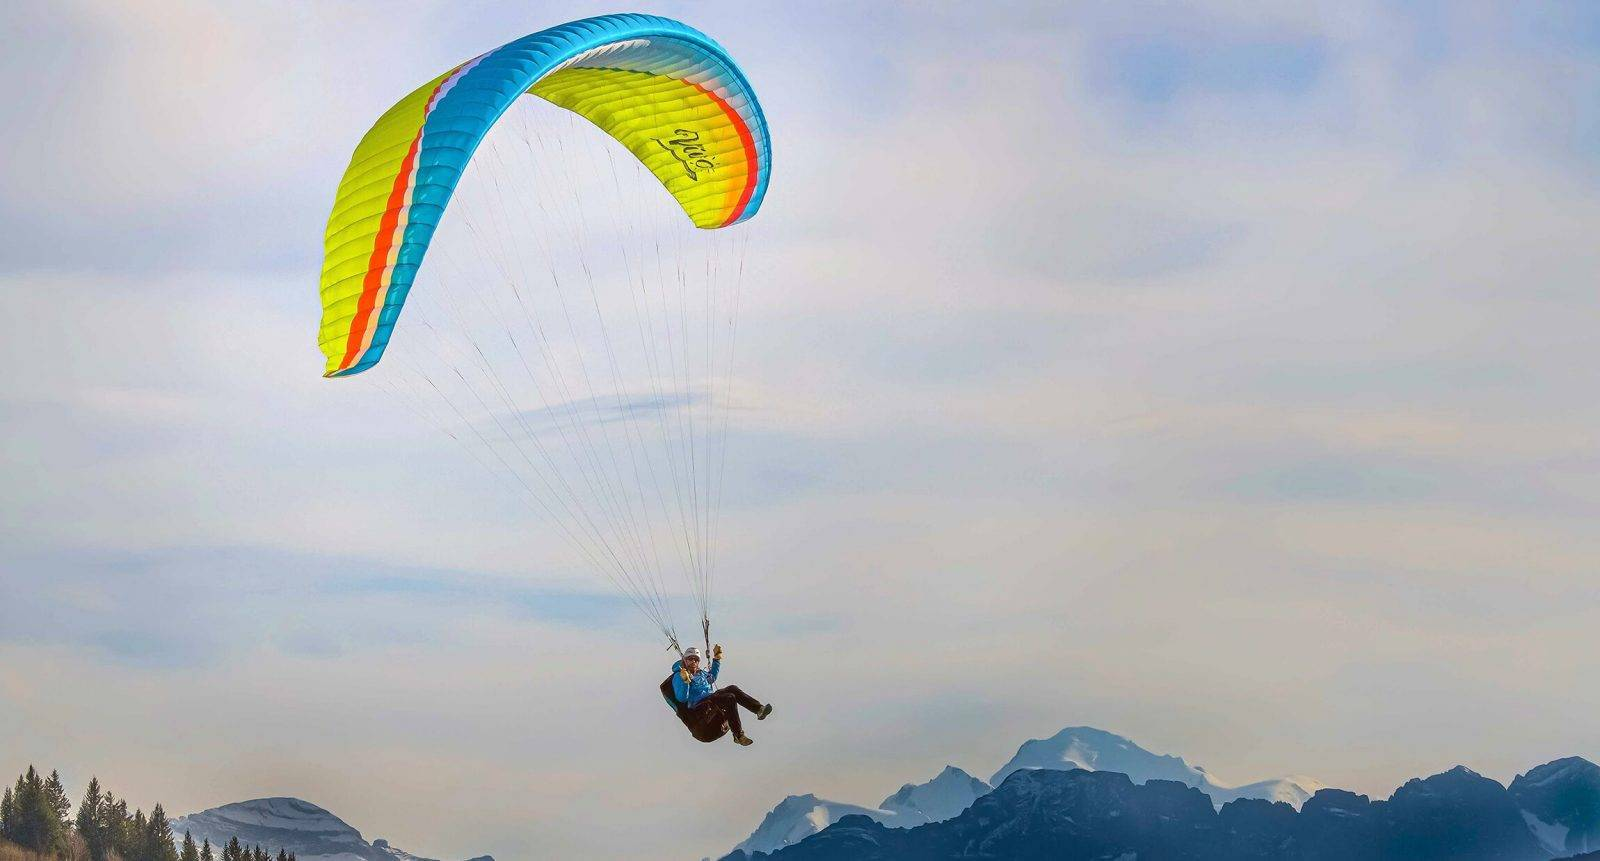 Vivo paragliding Air design